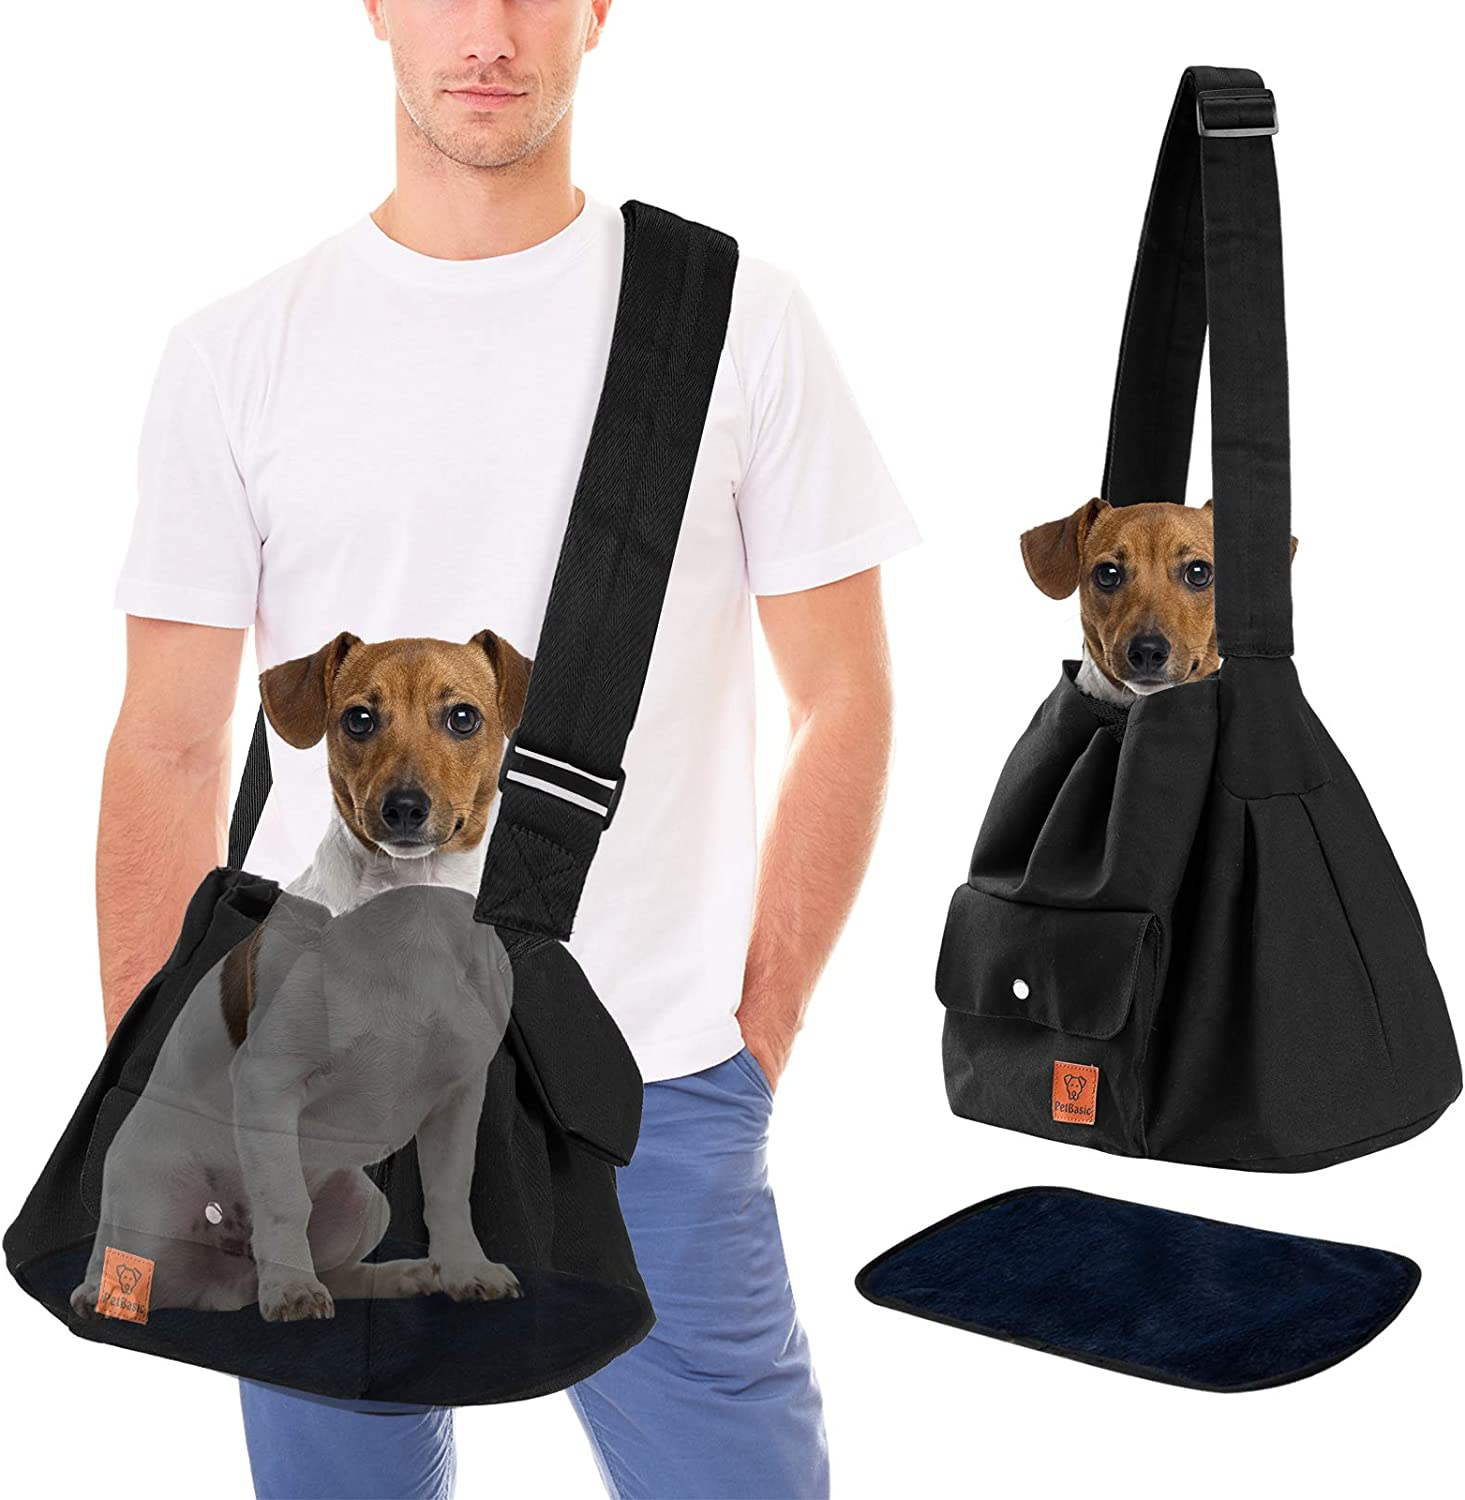 Dog Sling Carrier for Medium Dogs 10 Ranking TOP16 Pounds Super special price Pet to Lbs 20 up Ca